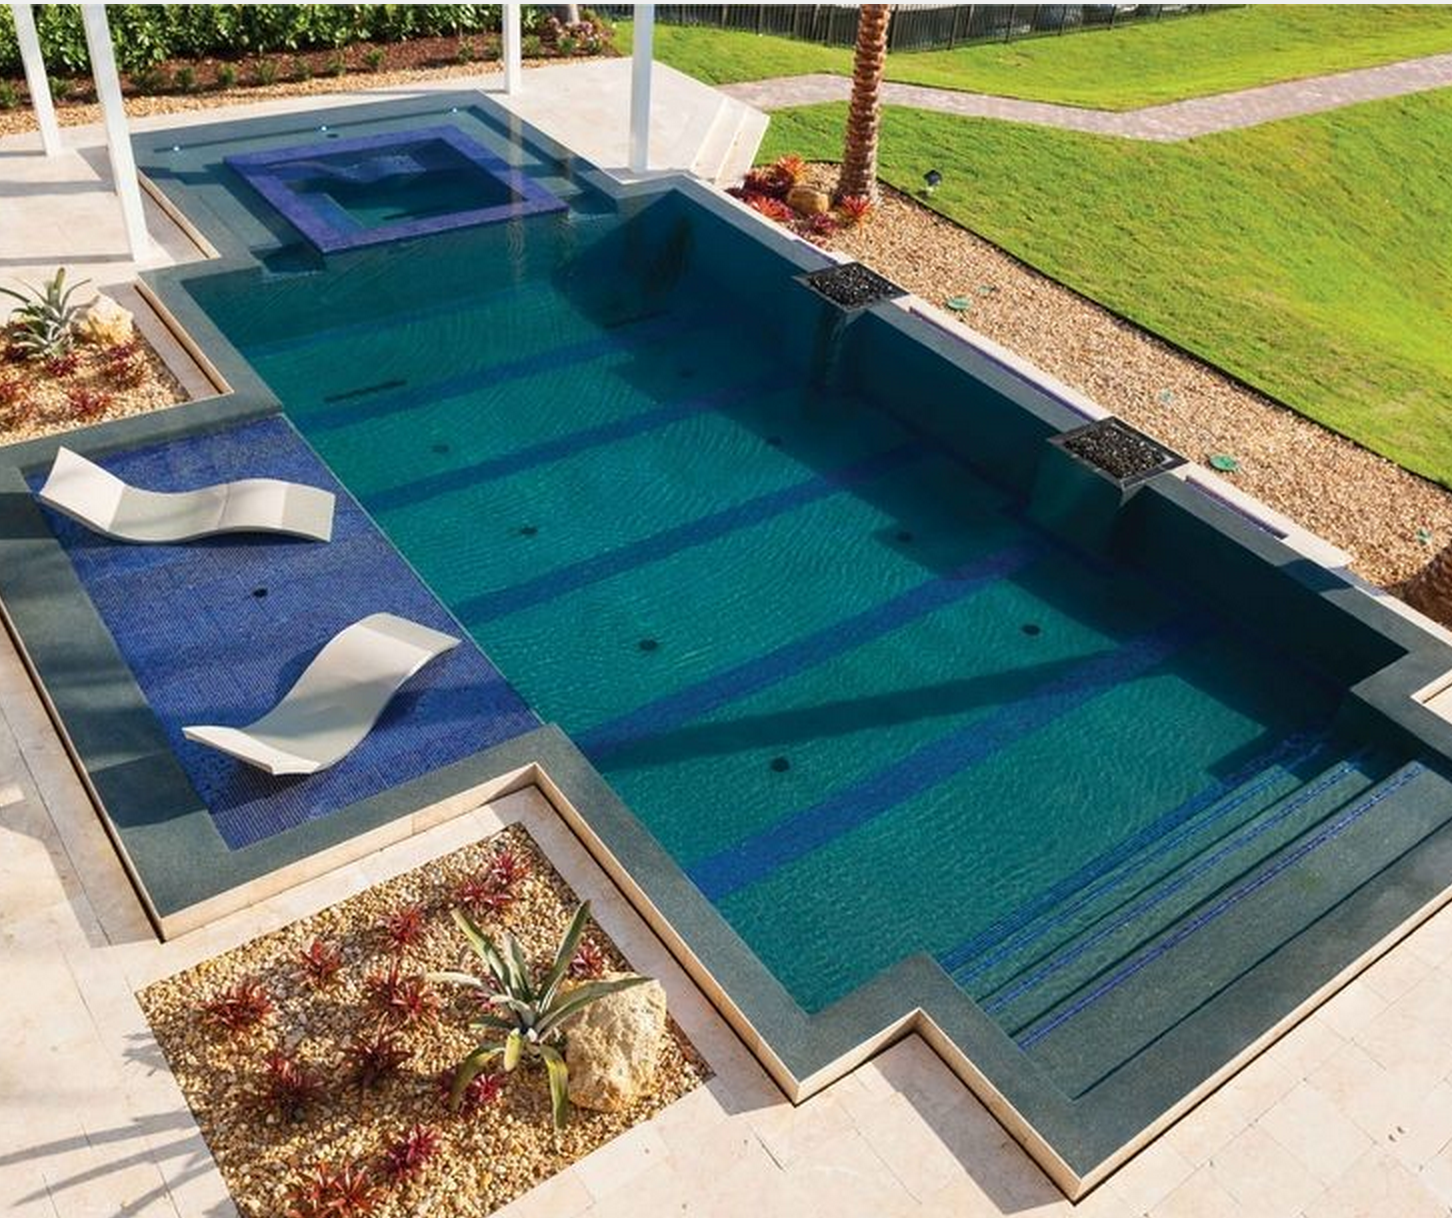 Pool Lounge Chair Pool With Shallow Lounge Chairs Submersed In Water Pool In 2019